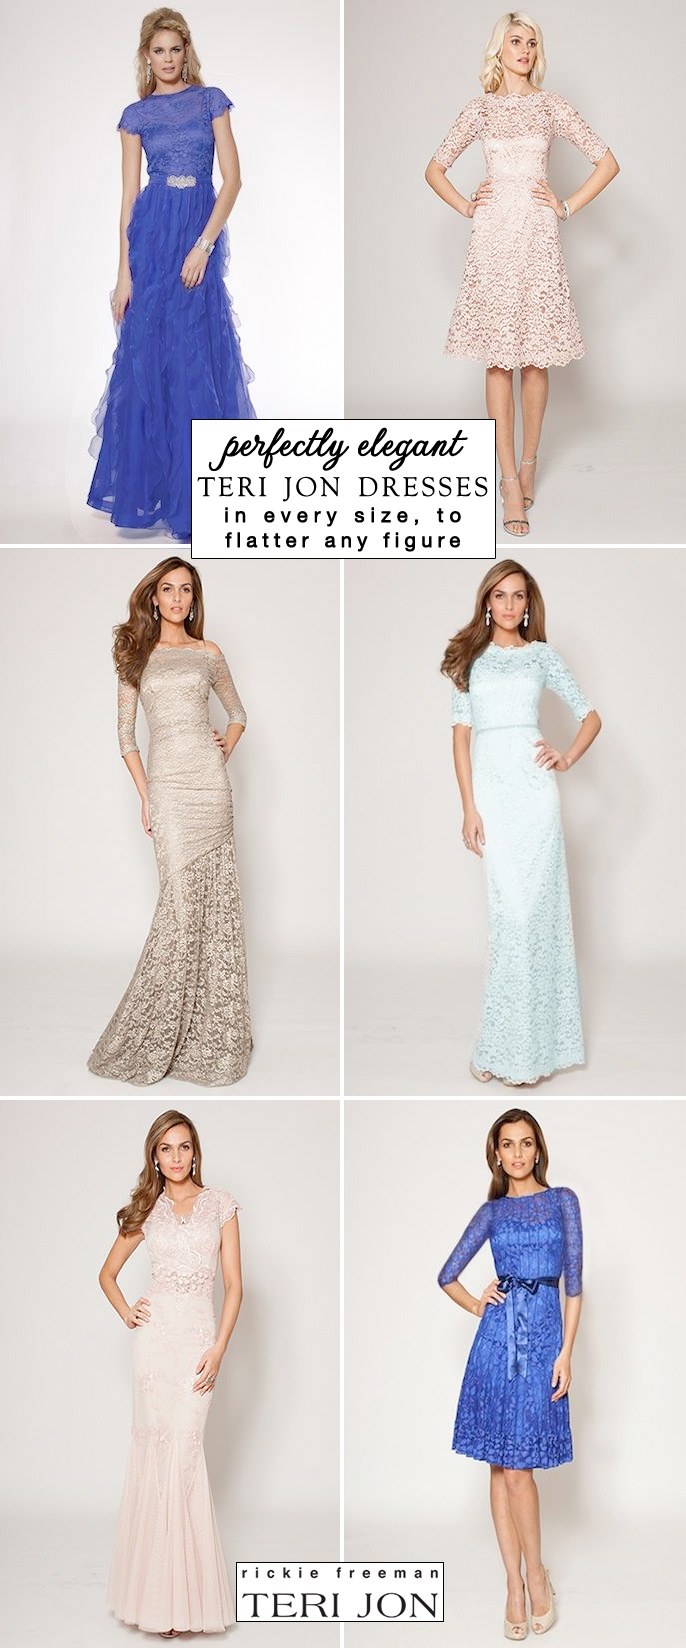 Teri Jon Elegant Dresses from Rickie Freeman in Every Size to Flatter Any Figure - click thru to see the blog post for a Free Shipping coupon code